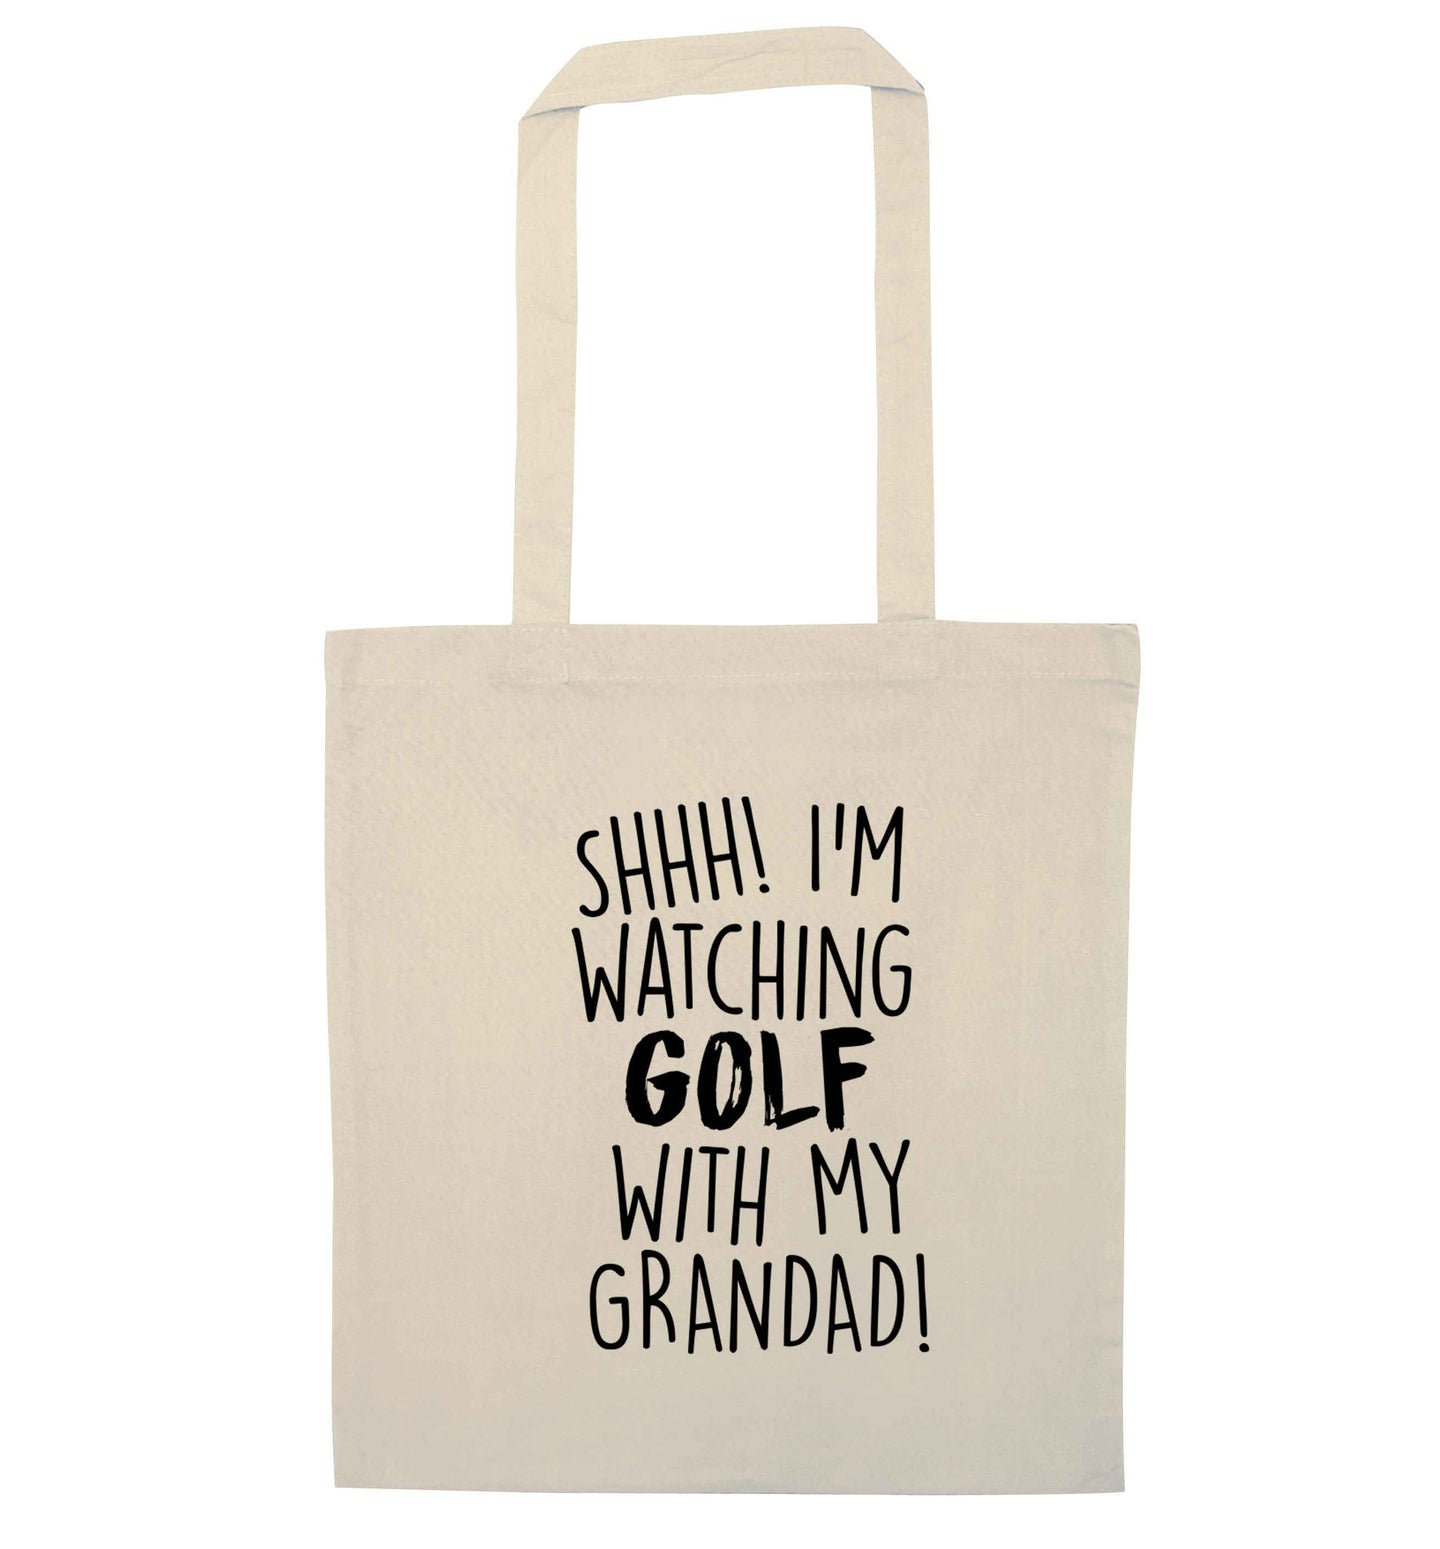 Shh I'm watching golf with my grandad natural tote bag